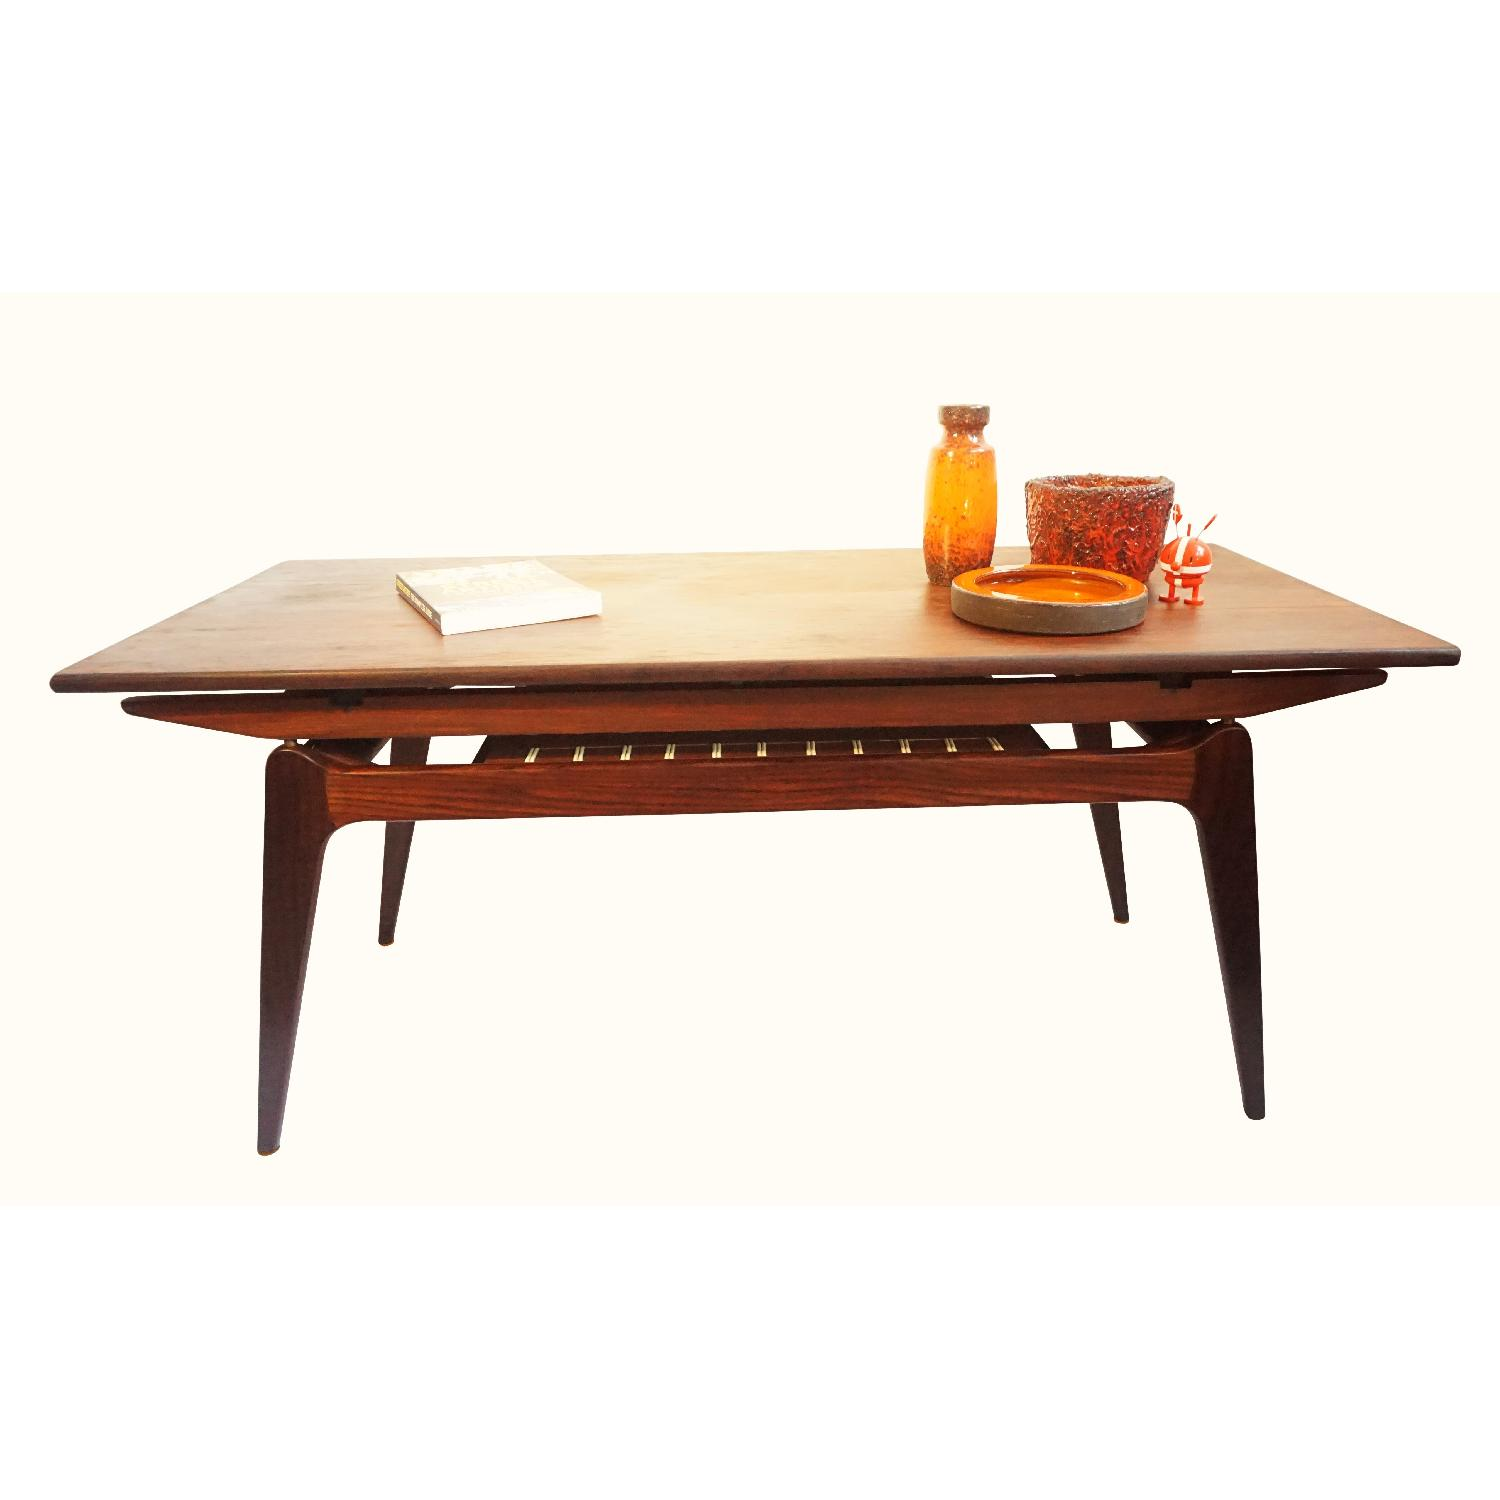 Copenhagen Coffee/Dining table - image-9